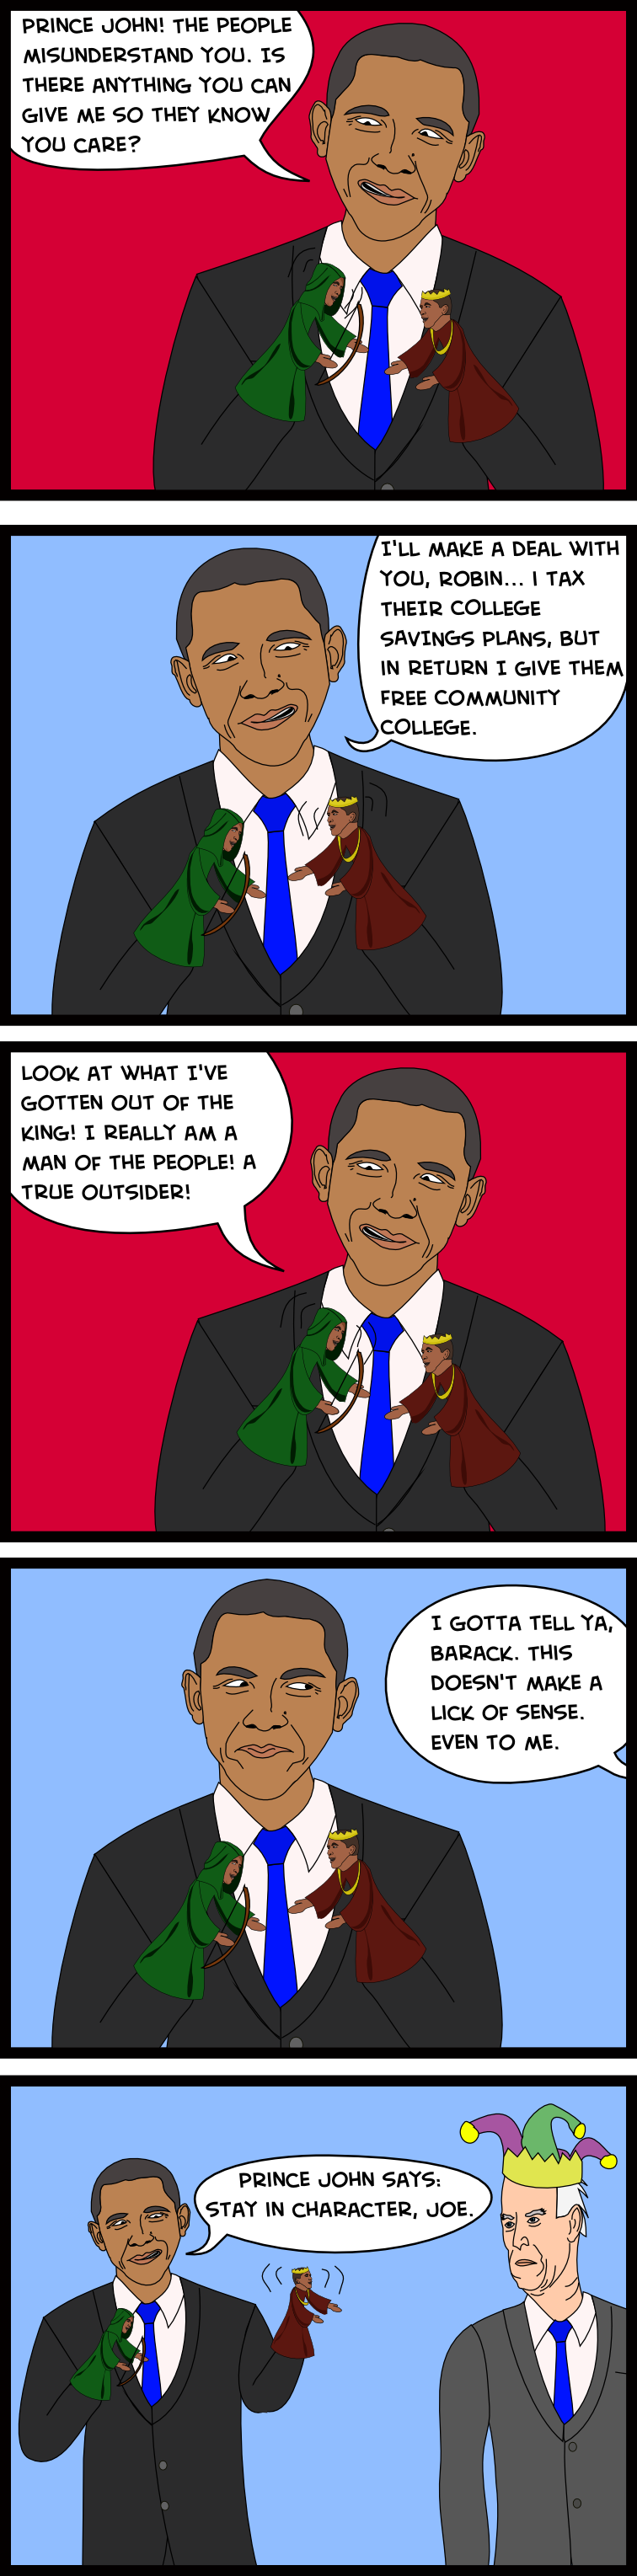 Obama-Is-Not-Robin-Hood